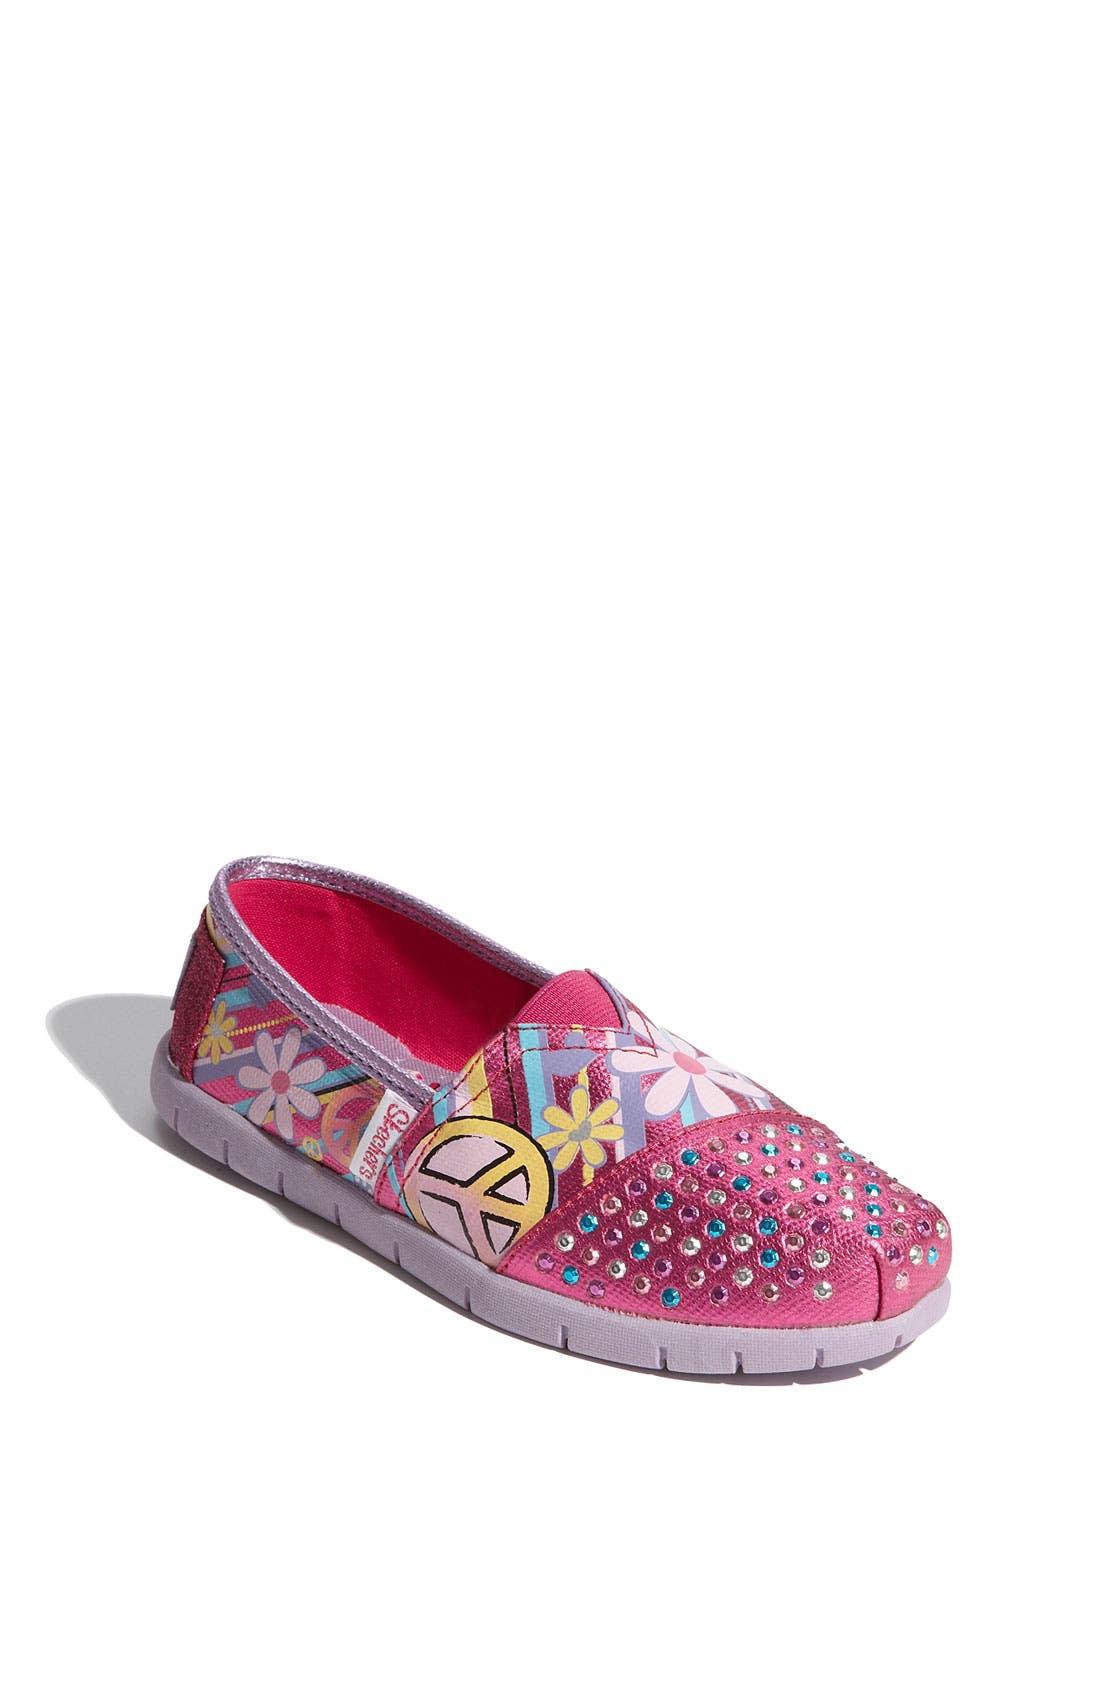 Alternate Image 1 Selected - SKECHERS 'Shuffle Ups' Slip-On (Toddler, Little Kid & Big Kid)